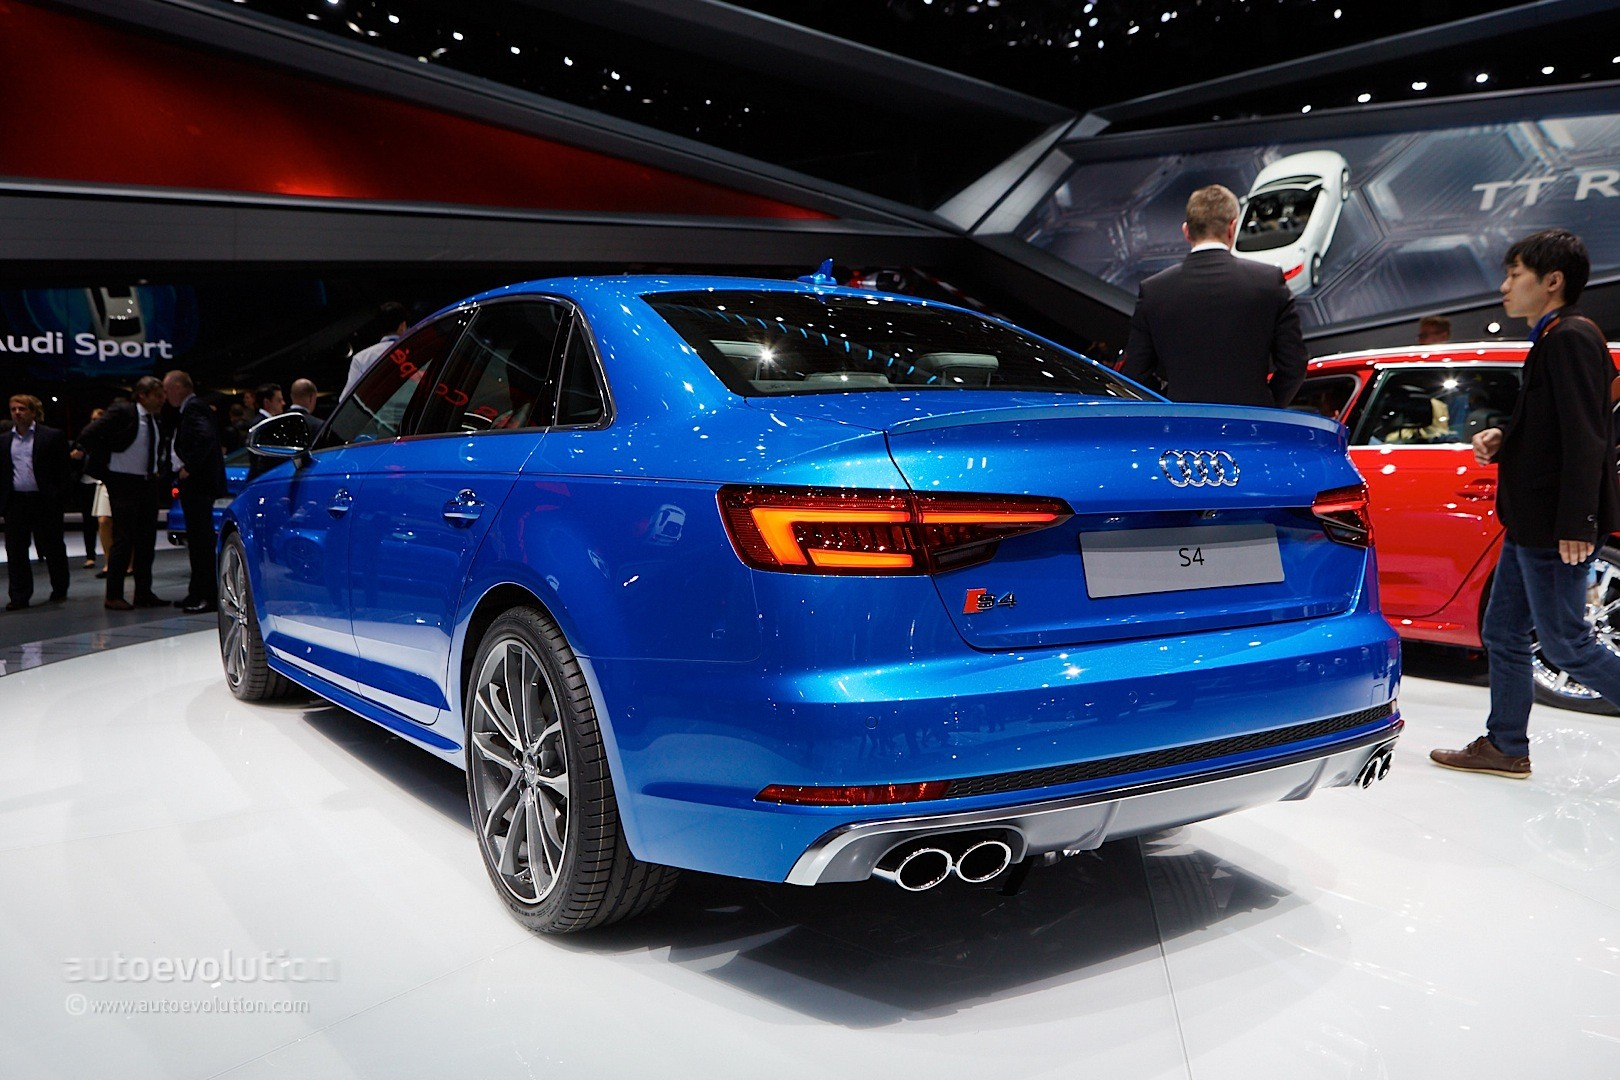 2015 audi s4 sedan and avant launched in germany with 354 hp turbo engines autoevolution. Black Bedroom Furniture Sets. Home Design Ideas